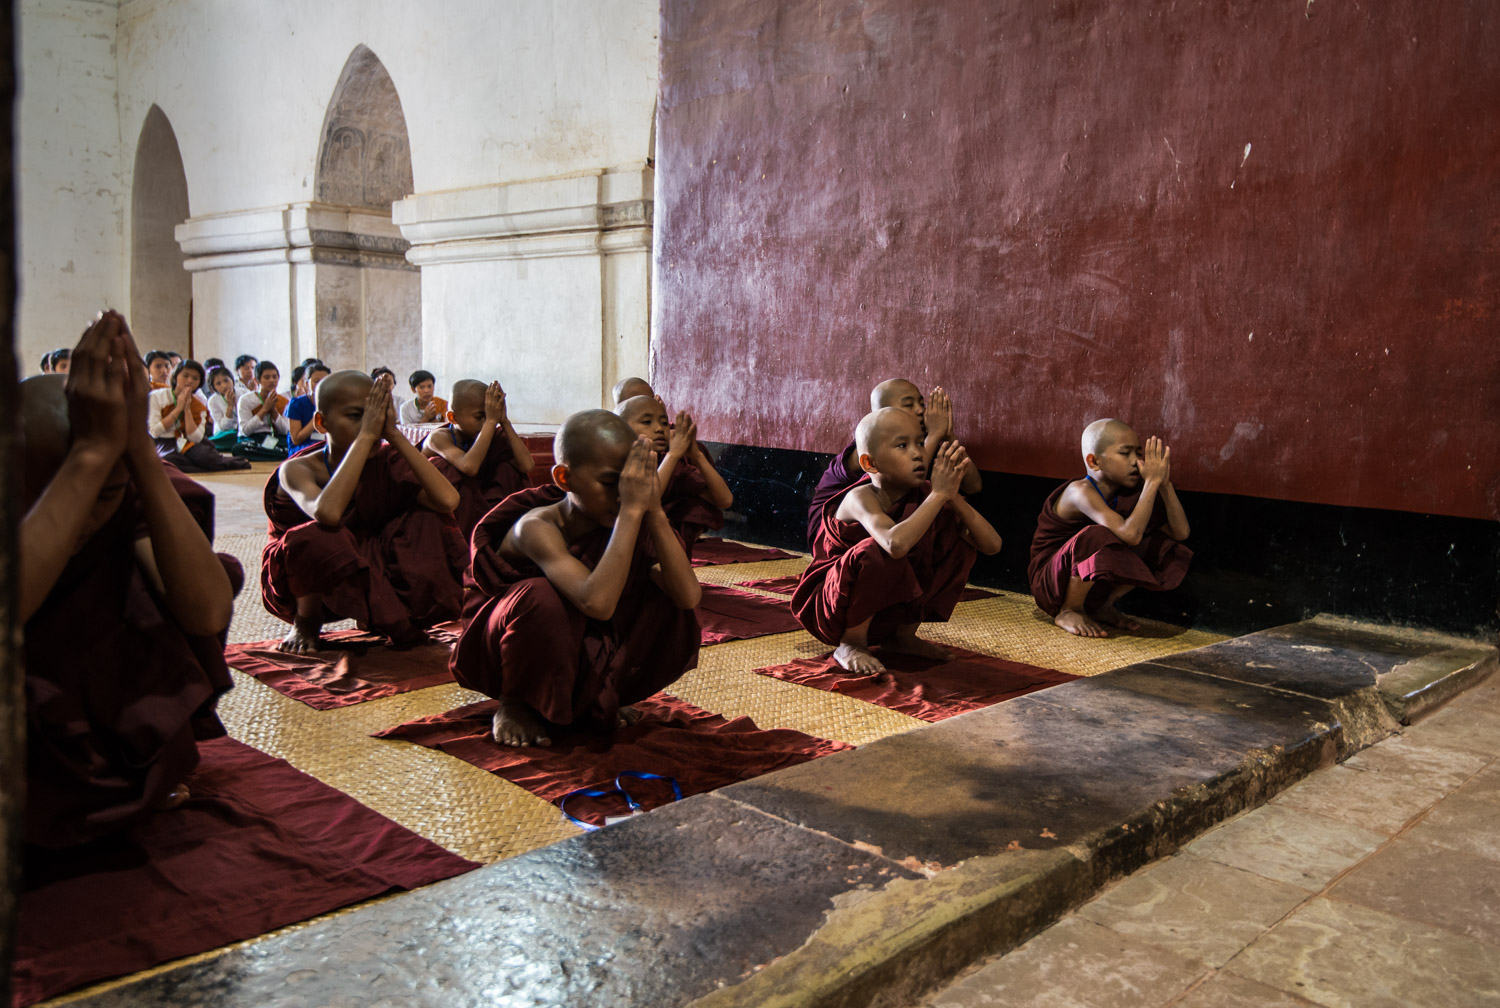 Novice Buddhist Monks in their saffron red robes squat and pray at the Ananda Phaya Temple in Bagan